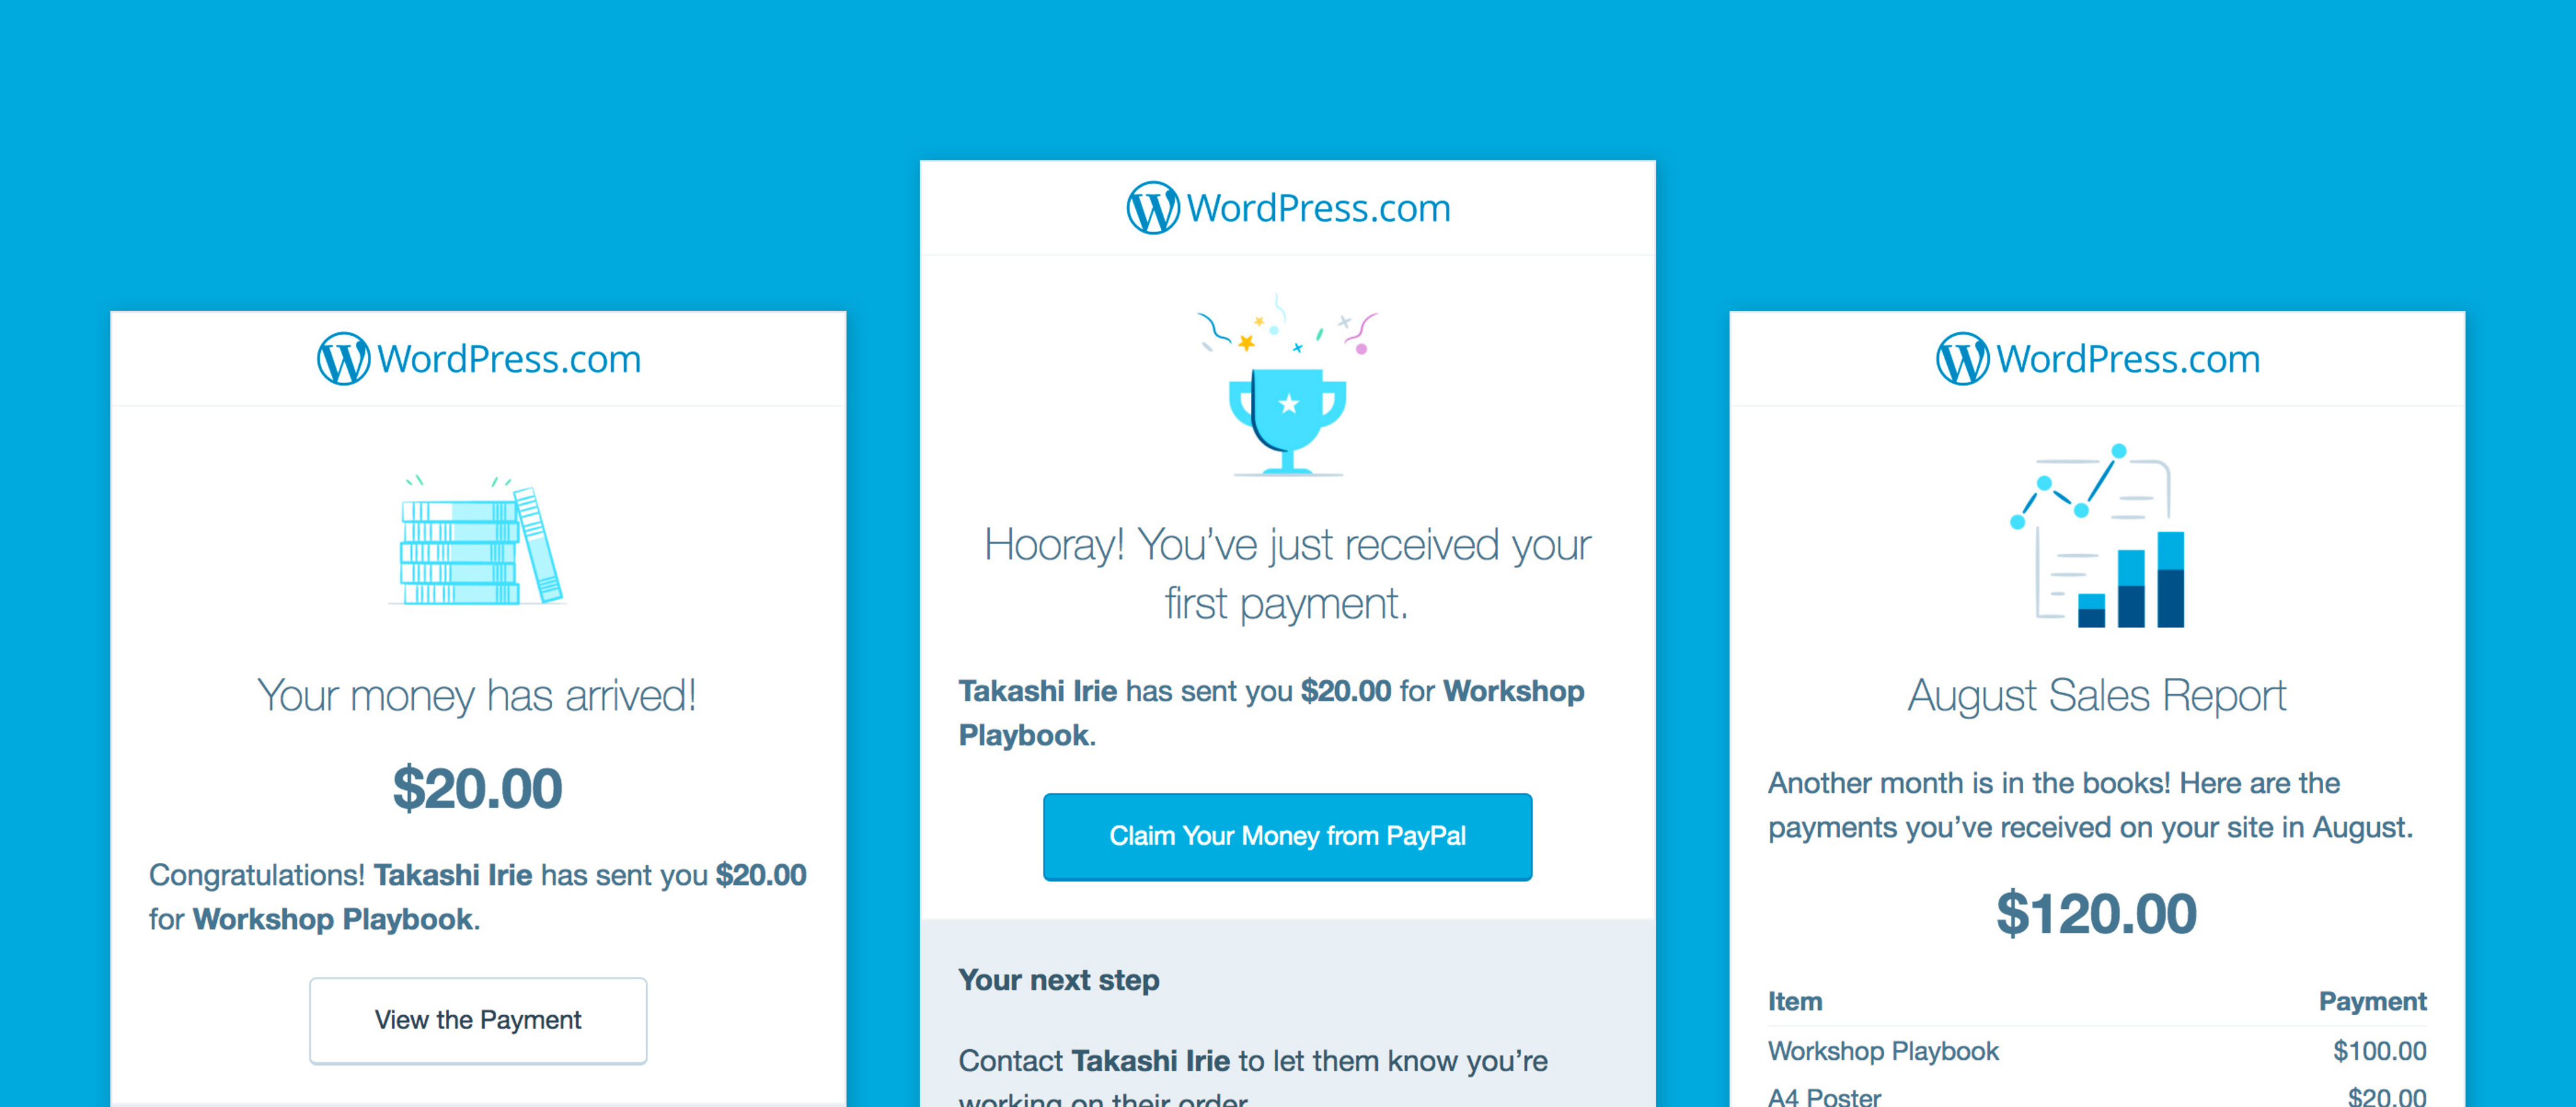 Add A Simple Payment Button To Your WordPress.com Premium Or Business Site